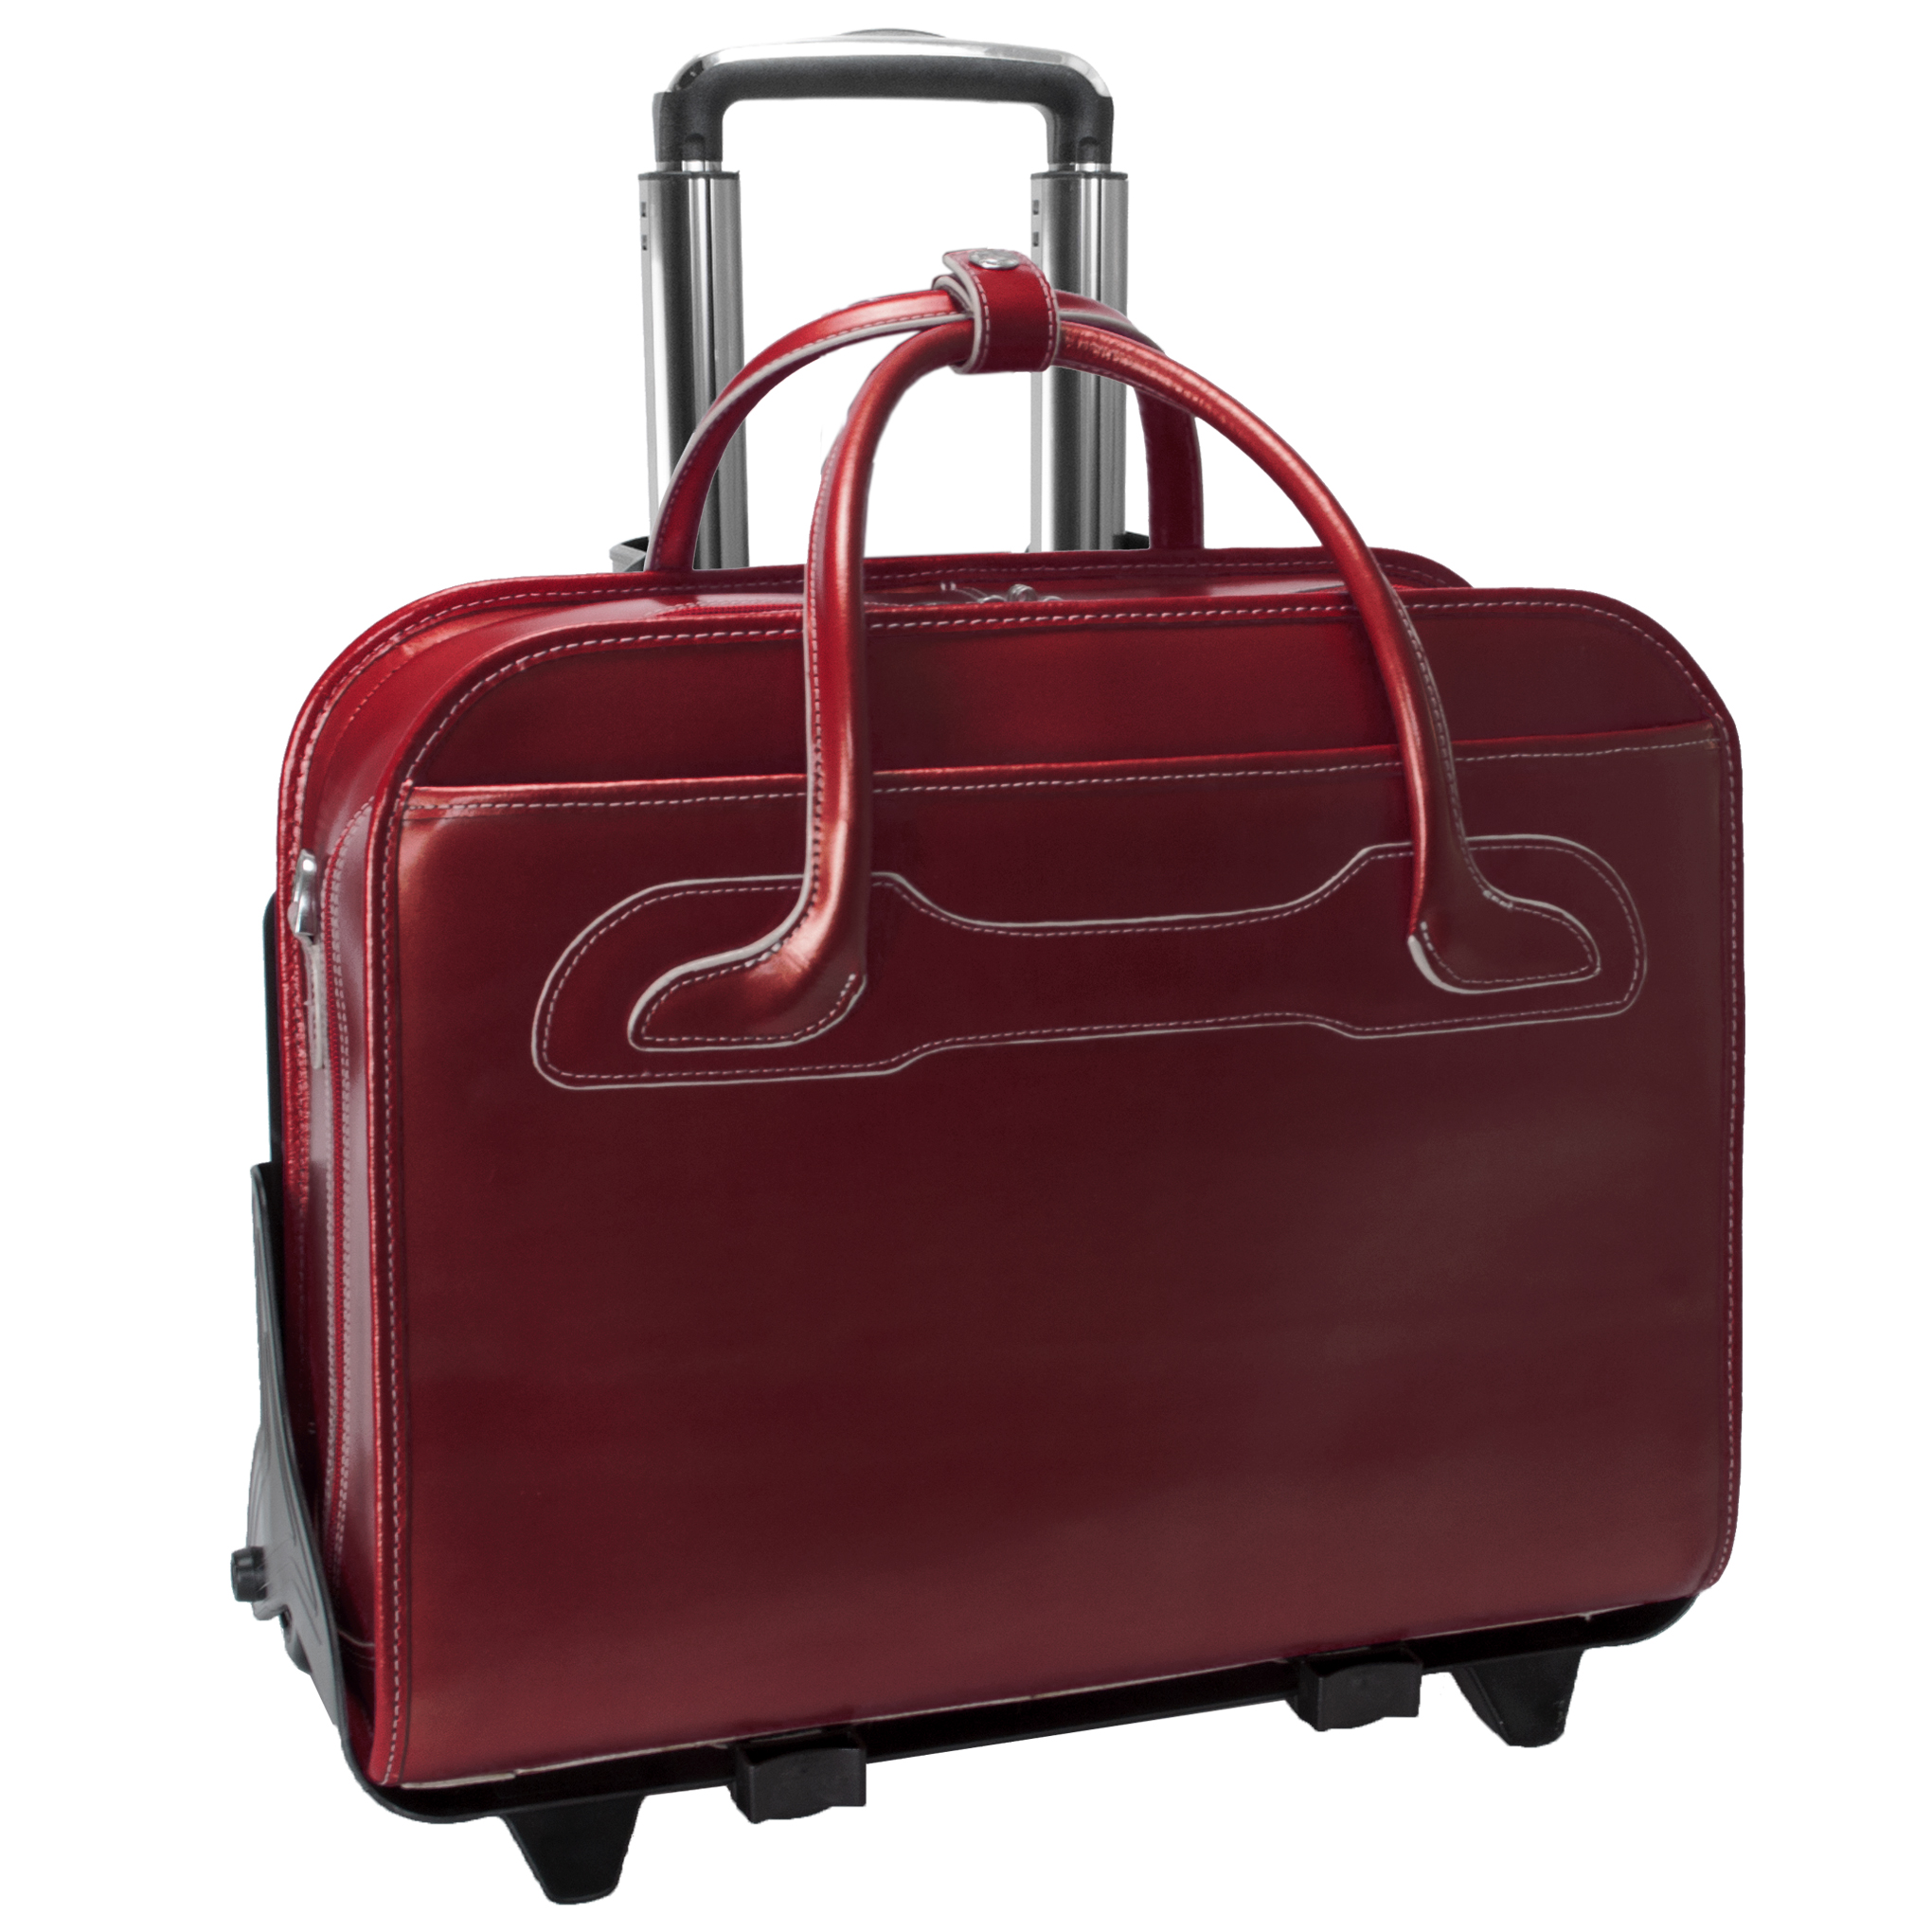 McKlein WILLOWBROOK, Patented Detachable -Wheeled Ladies' Laptop Briefcase, Top Grain Cowhide Leather, Red (94986)